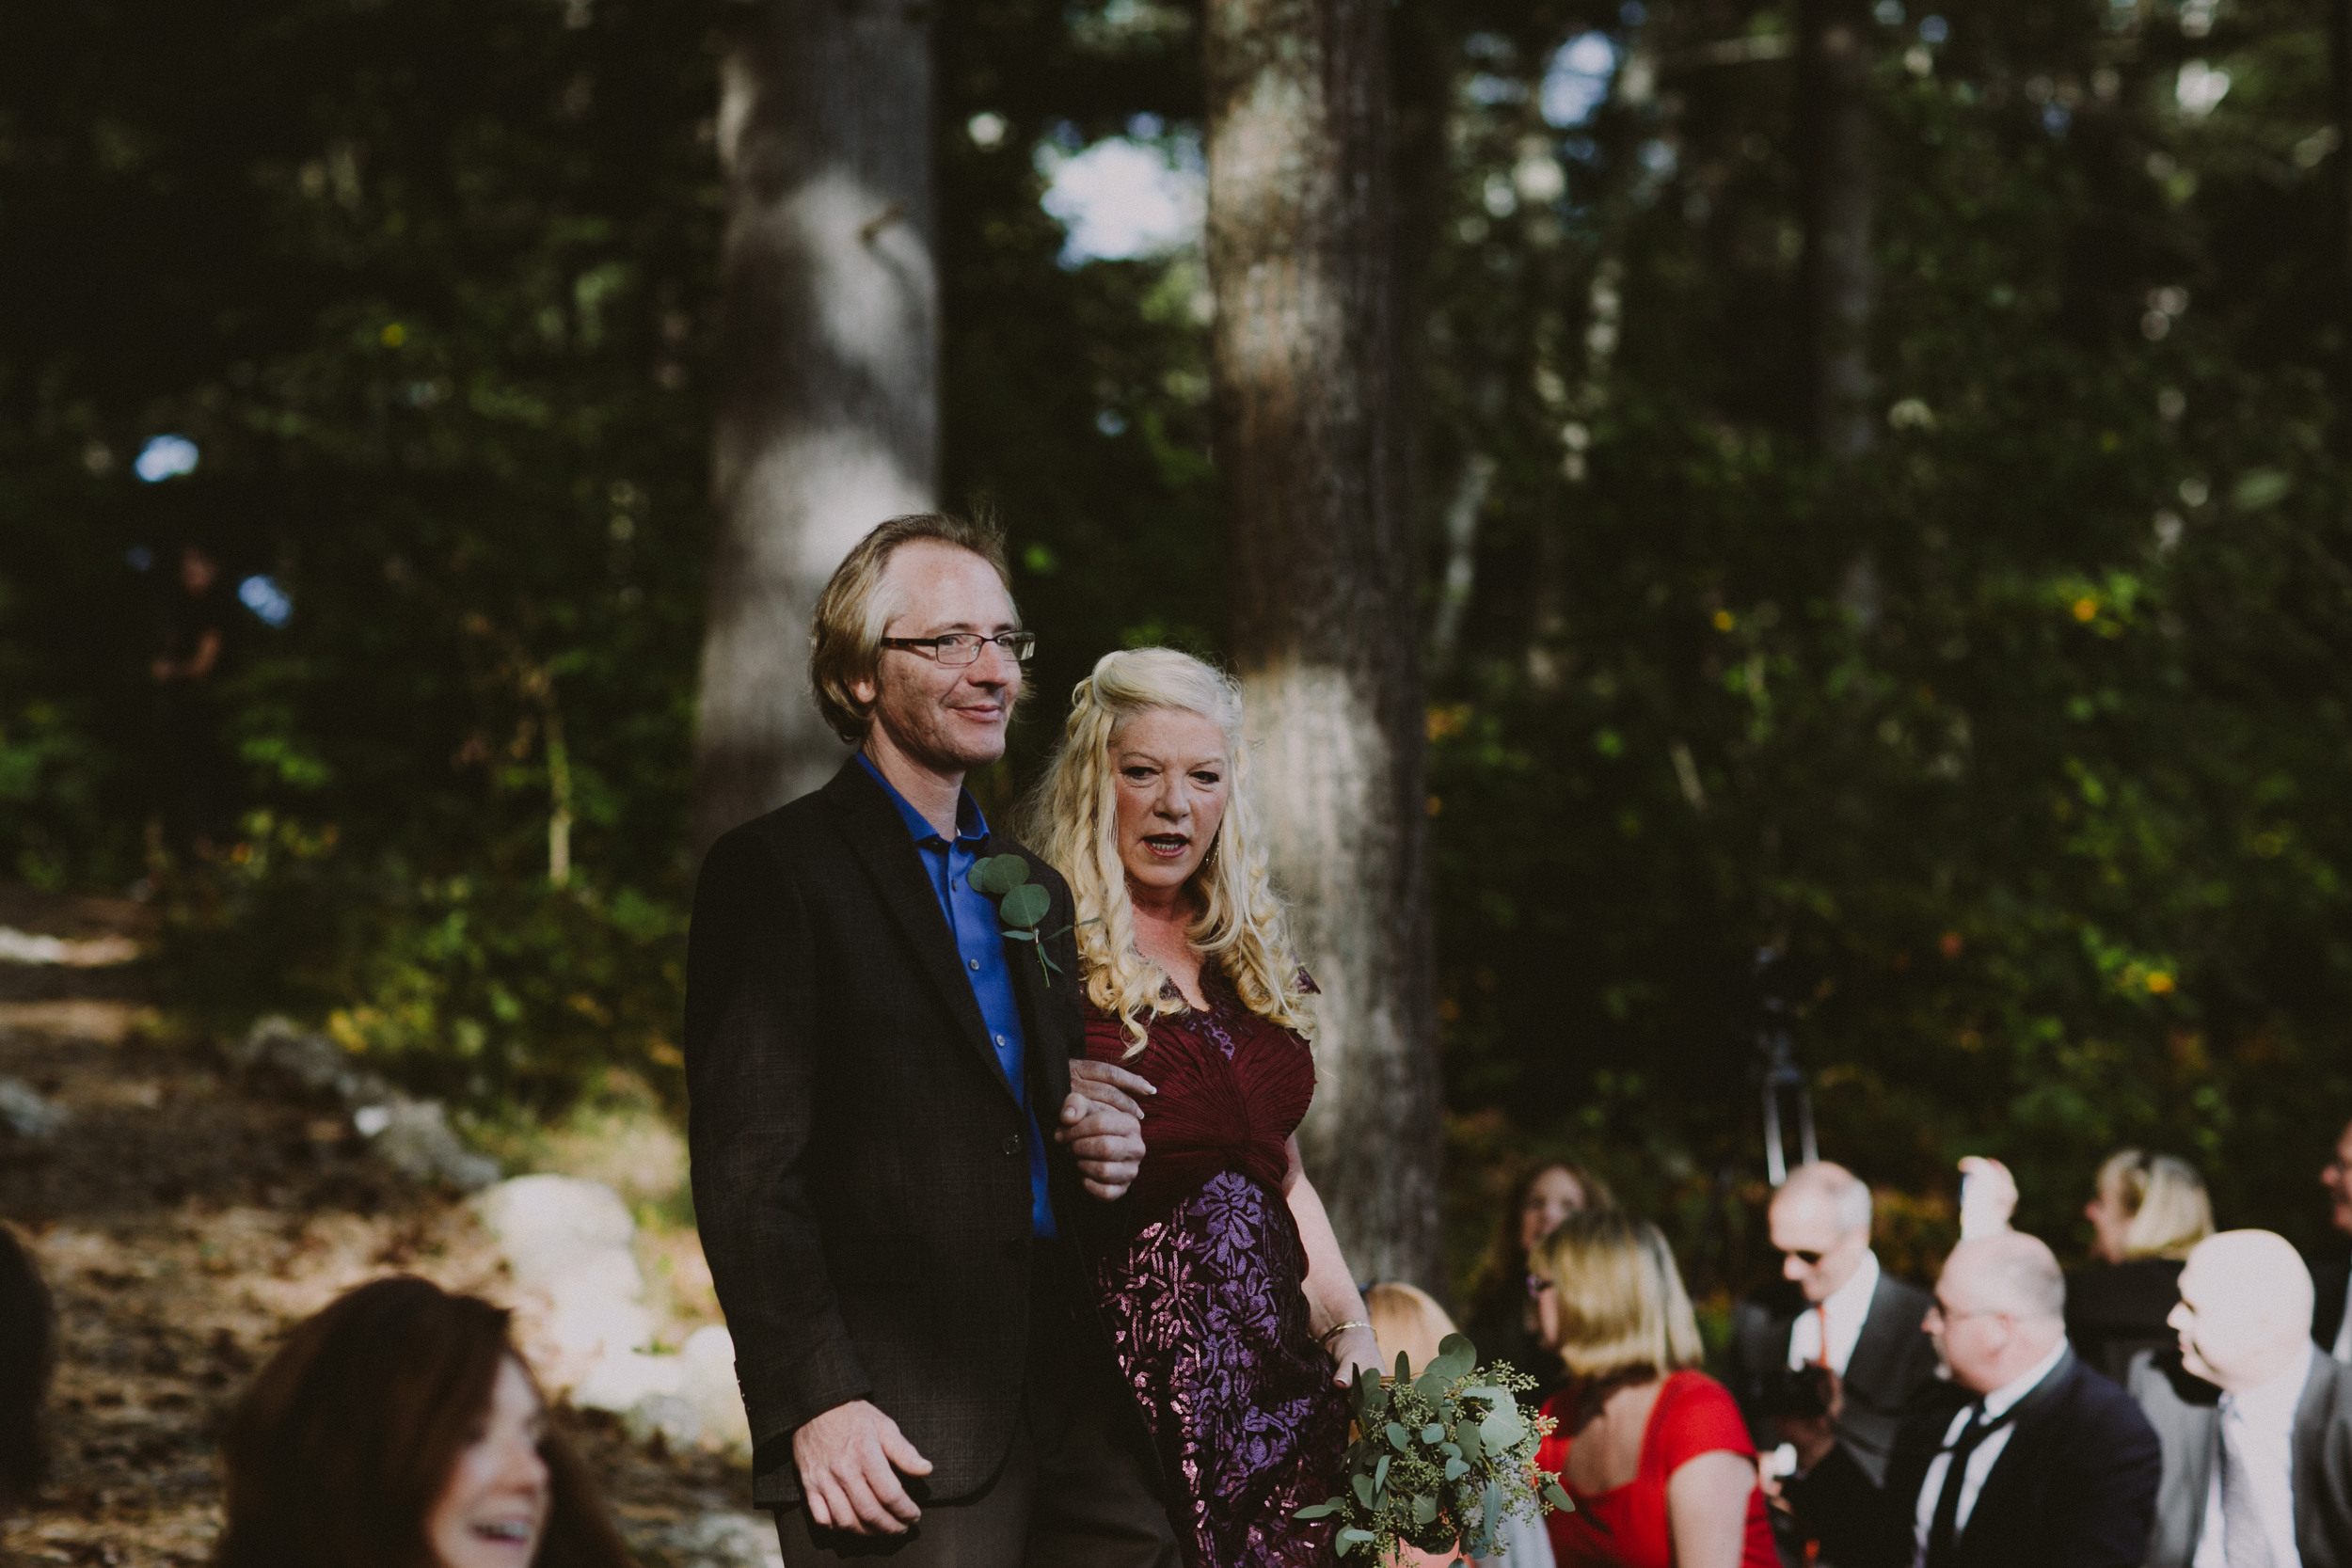 windsor mountain summer camp wedding NH chellise michael photography 1770.jpg